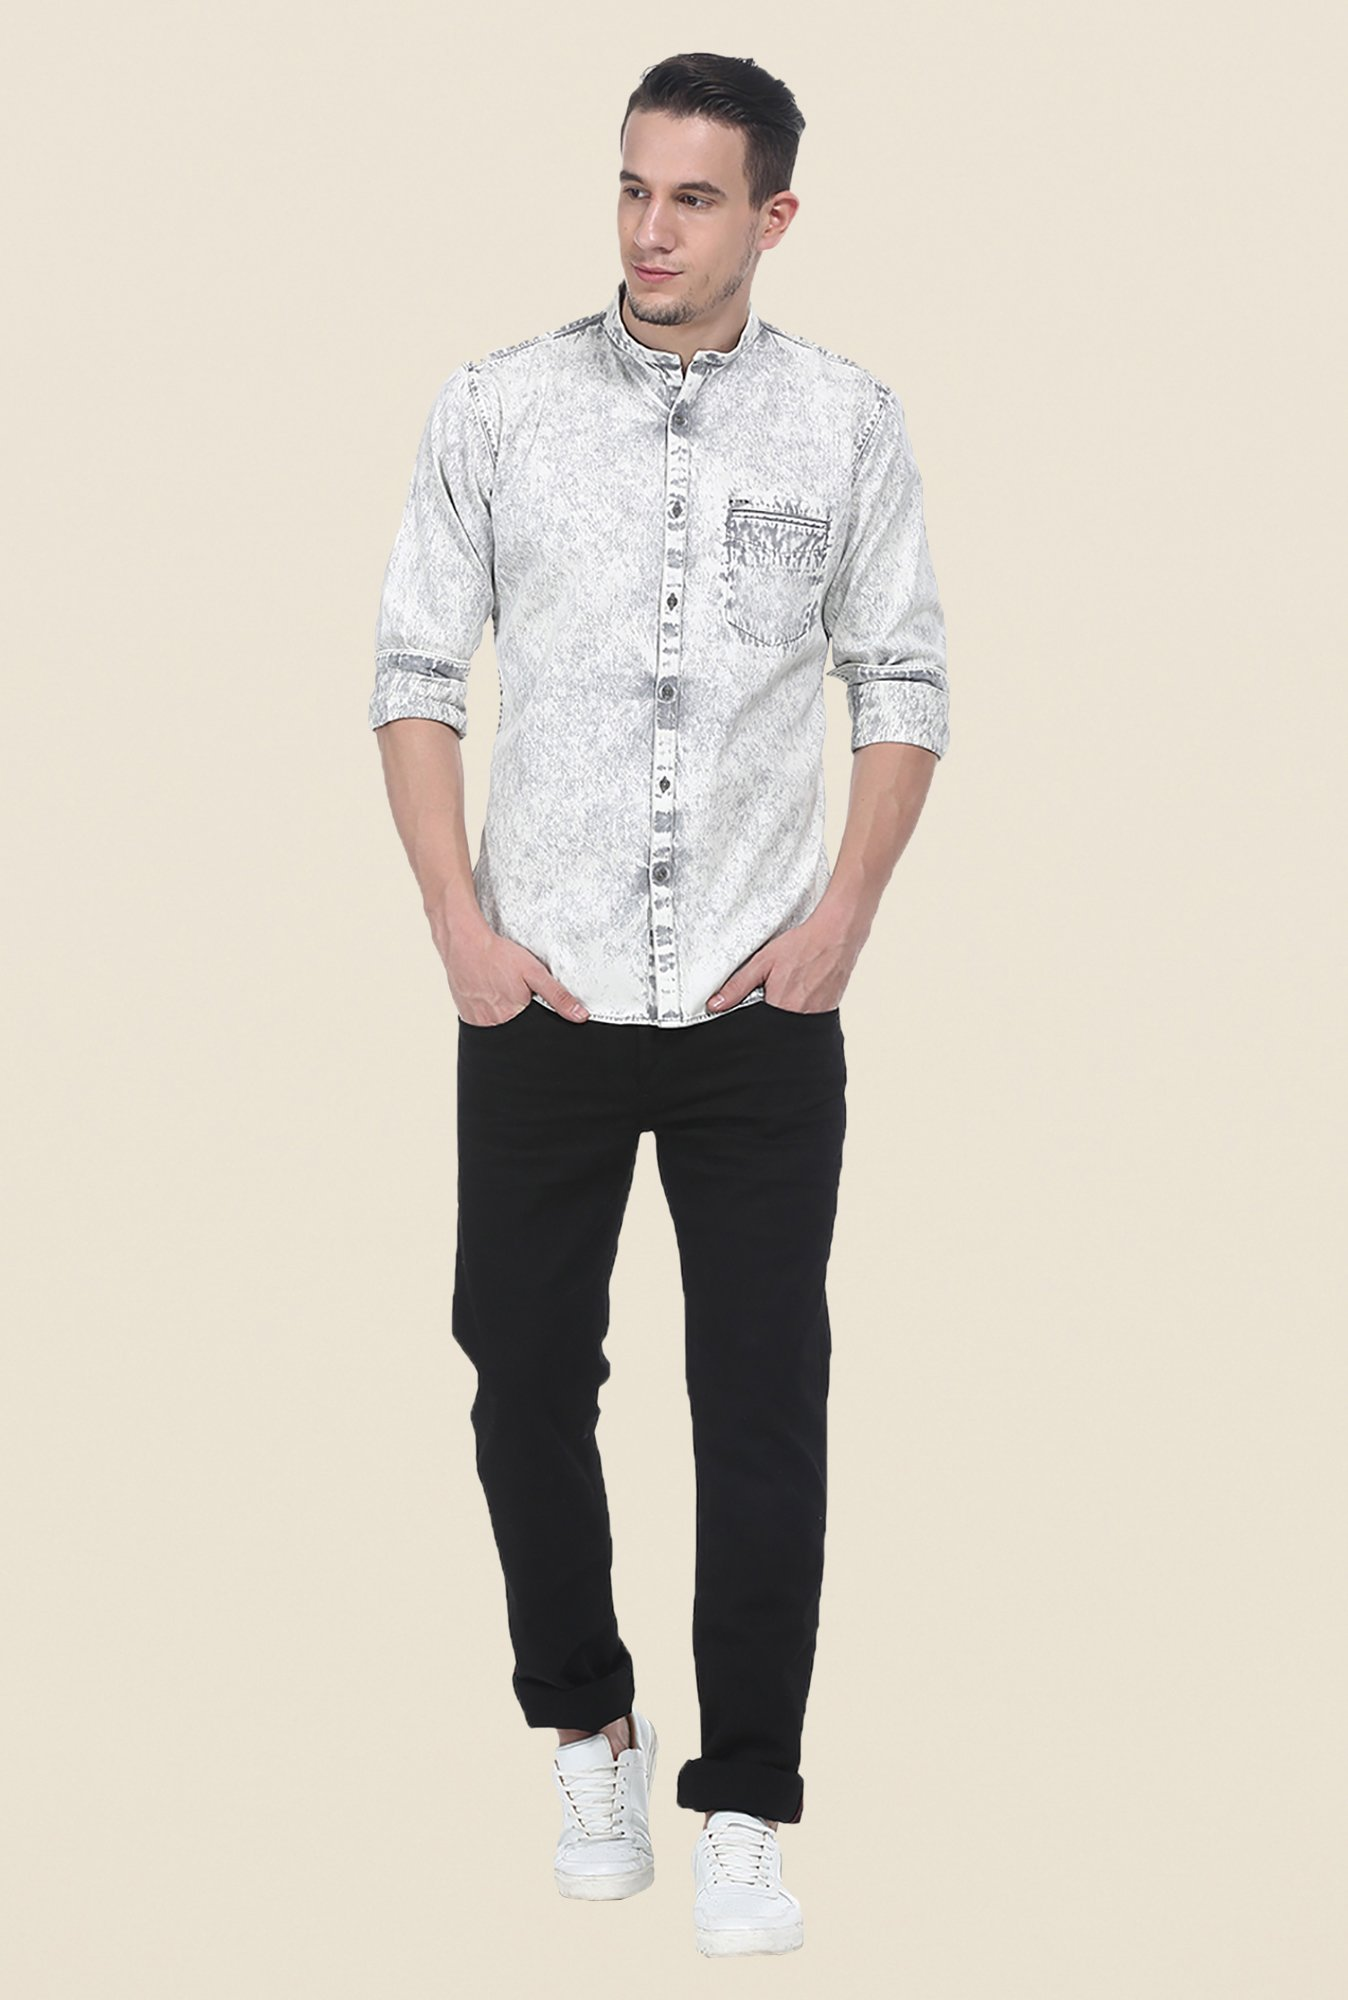 Basics Grey Textured Slim Fit Shirt